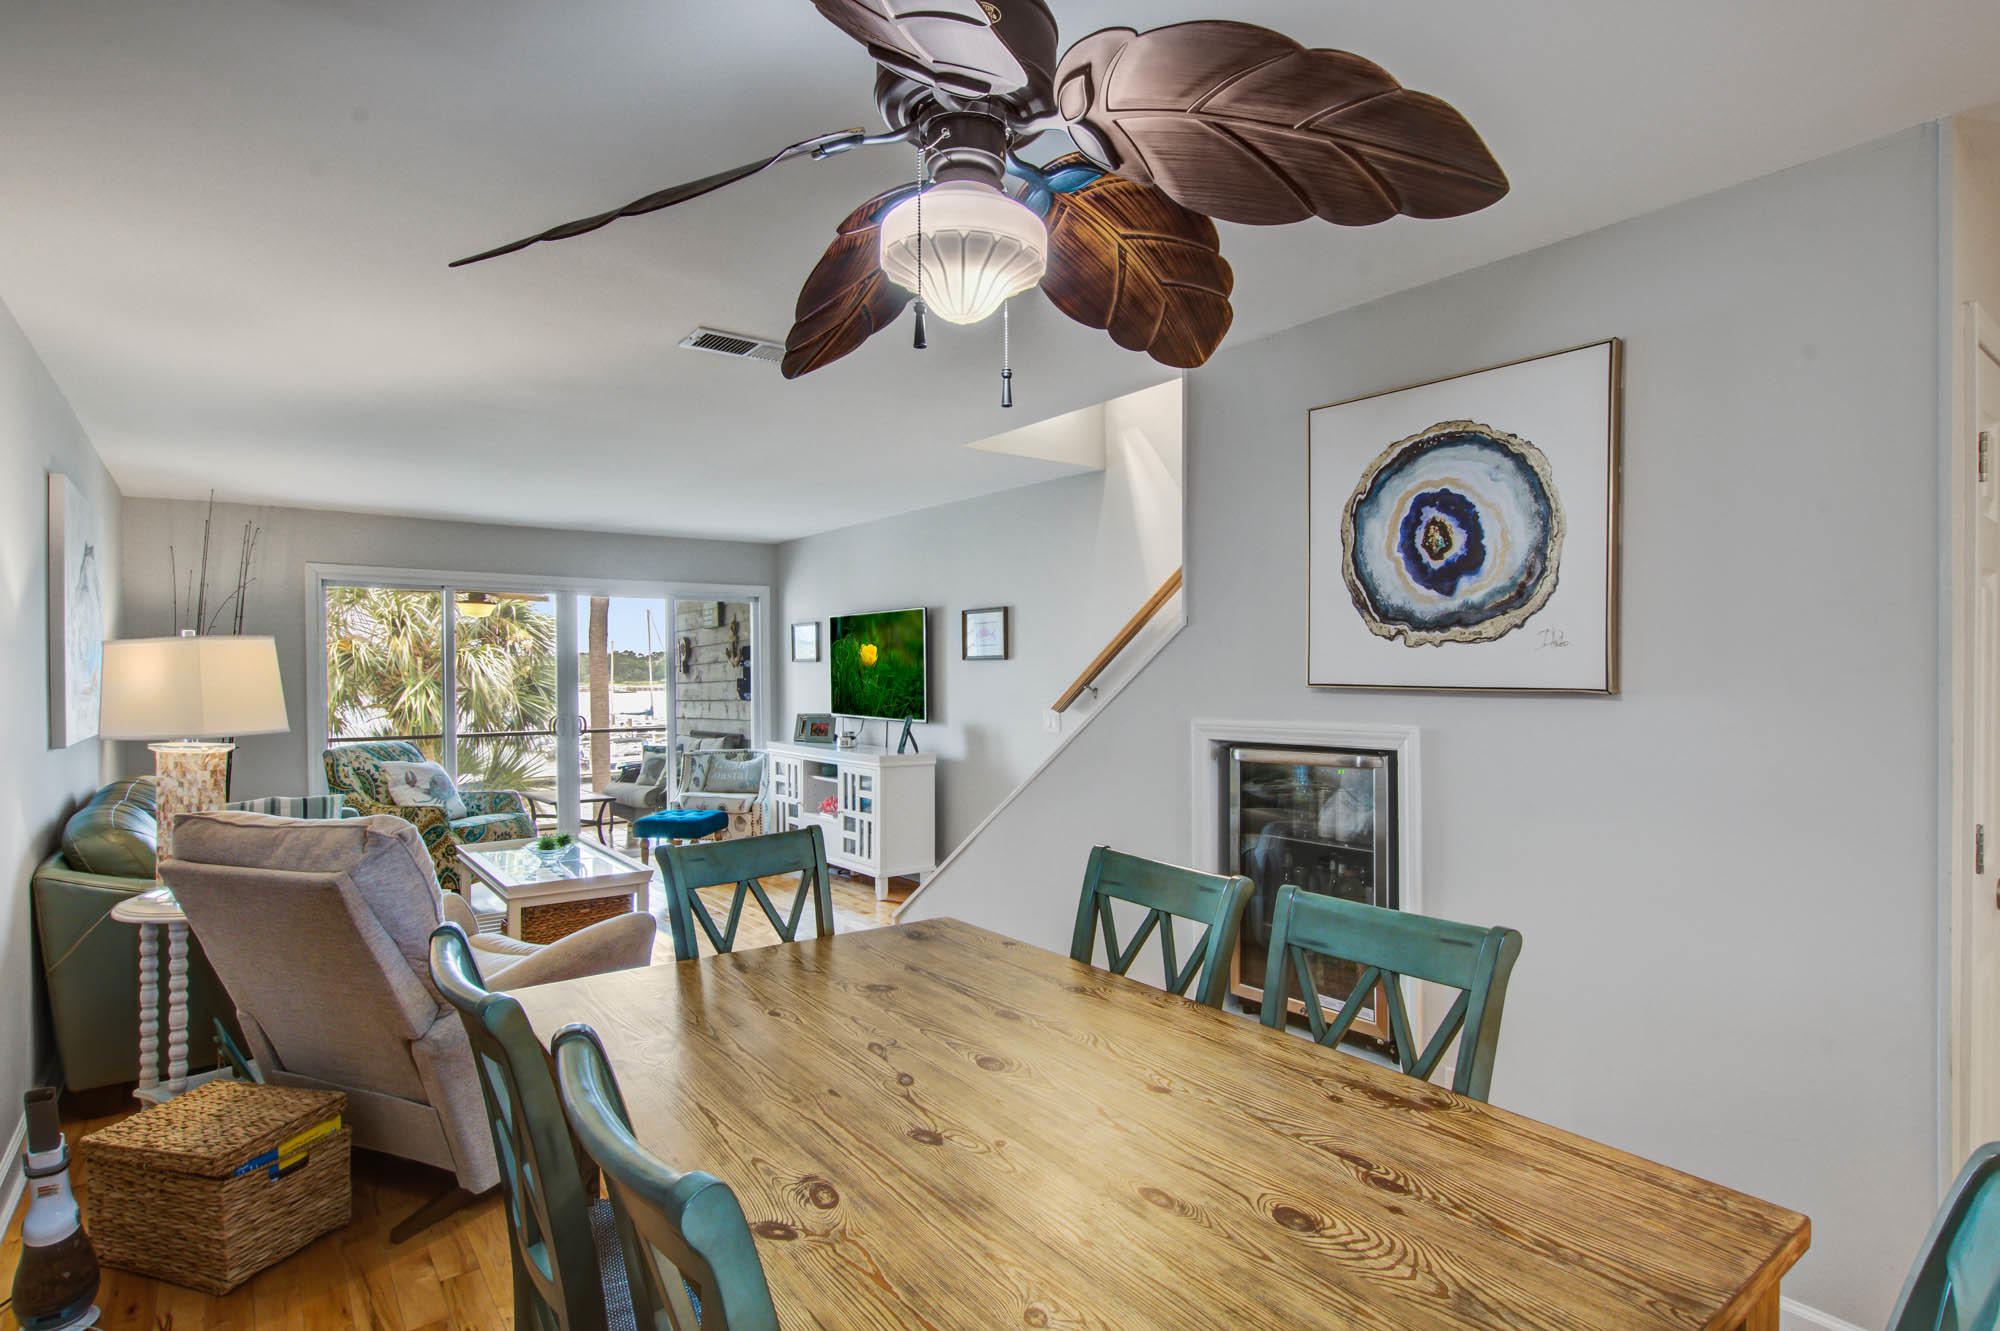 Mariners Cay Homes For Sale - 56 Mariners Cay, Folly Beach, SC - 11